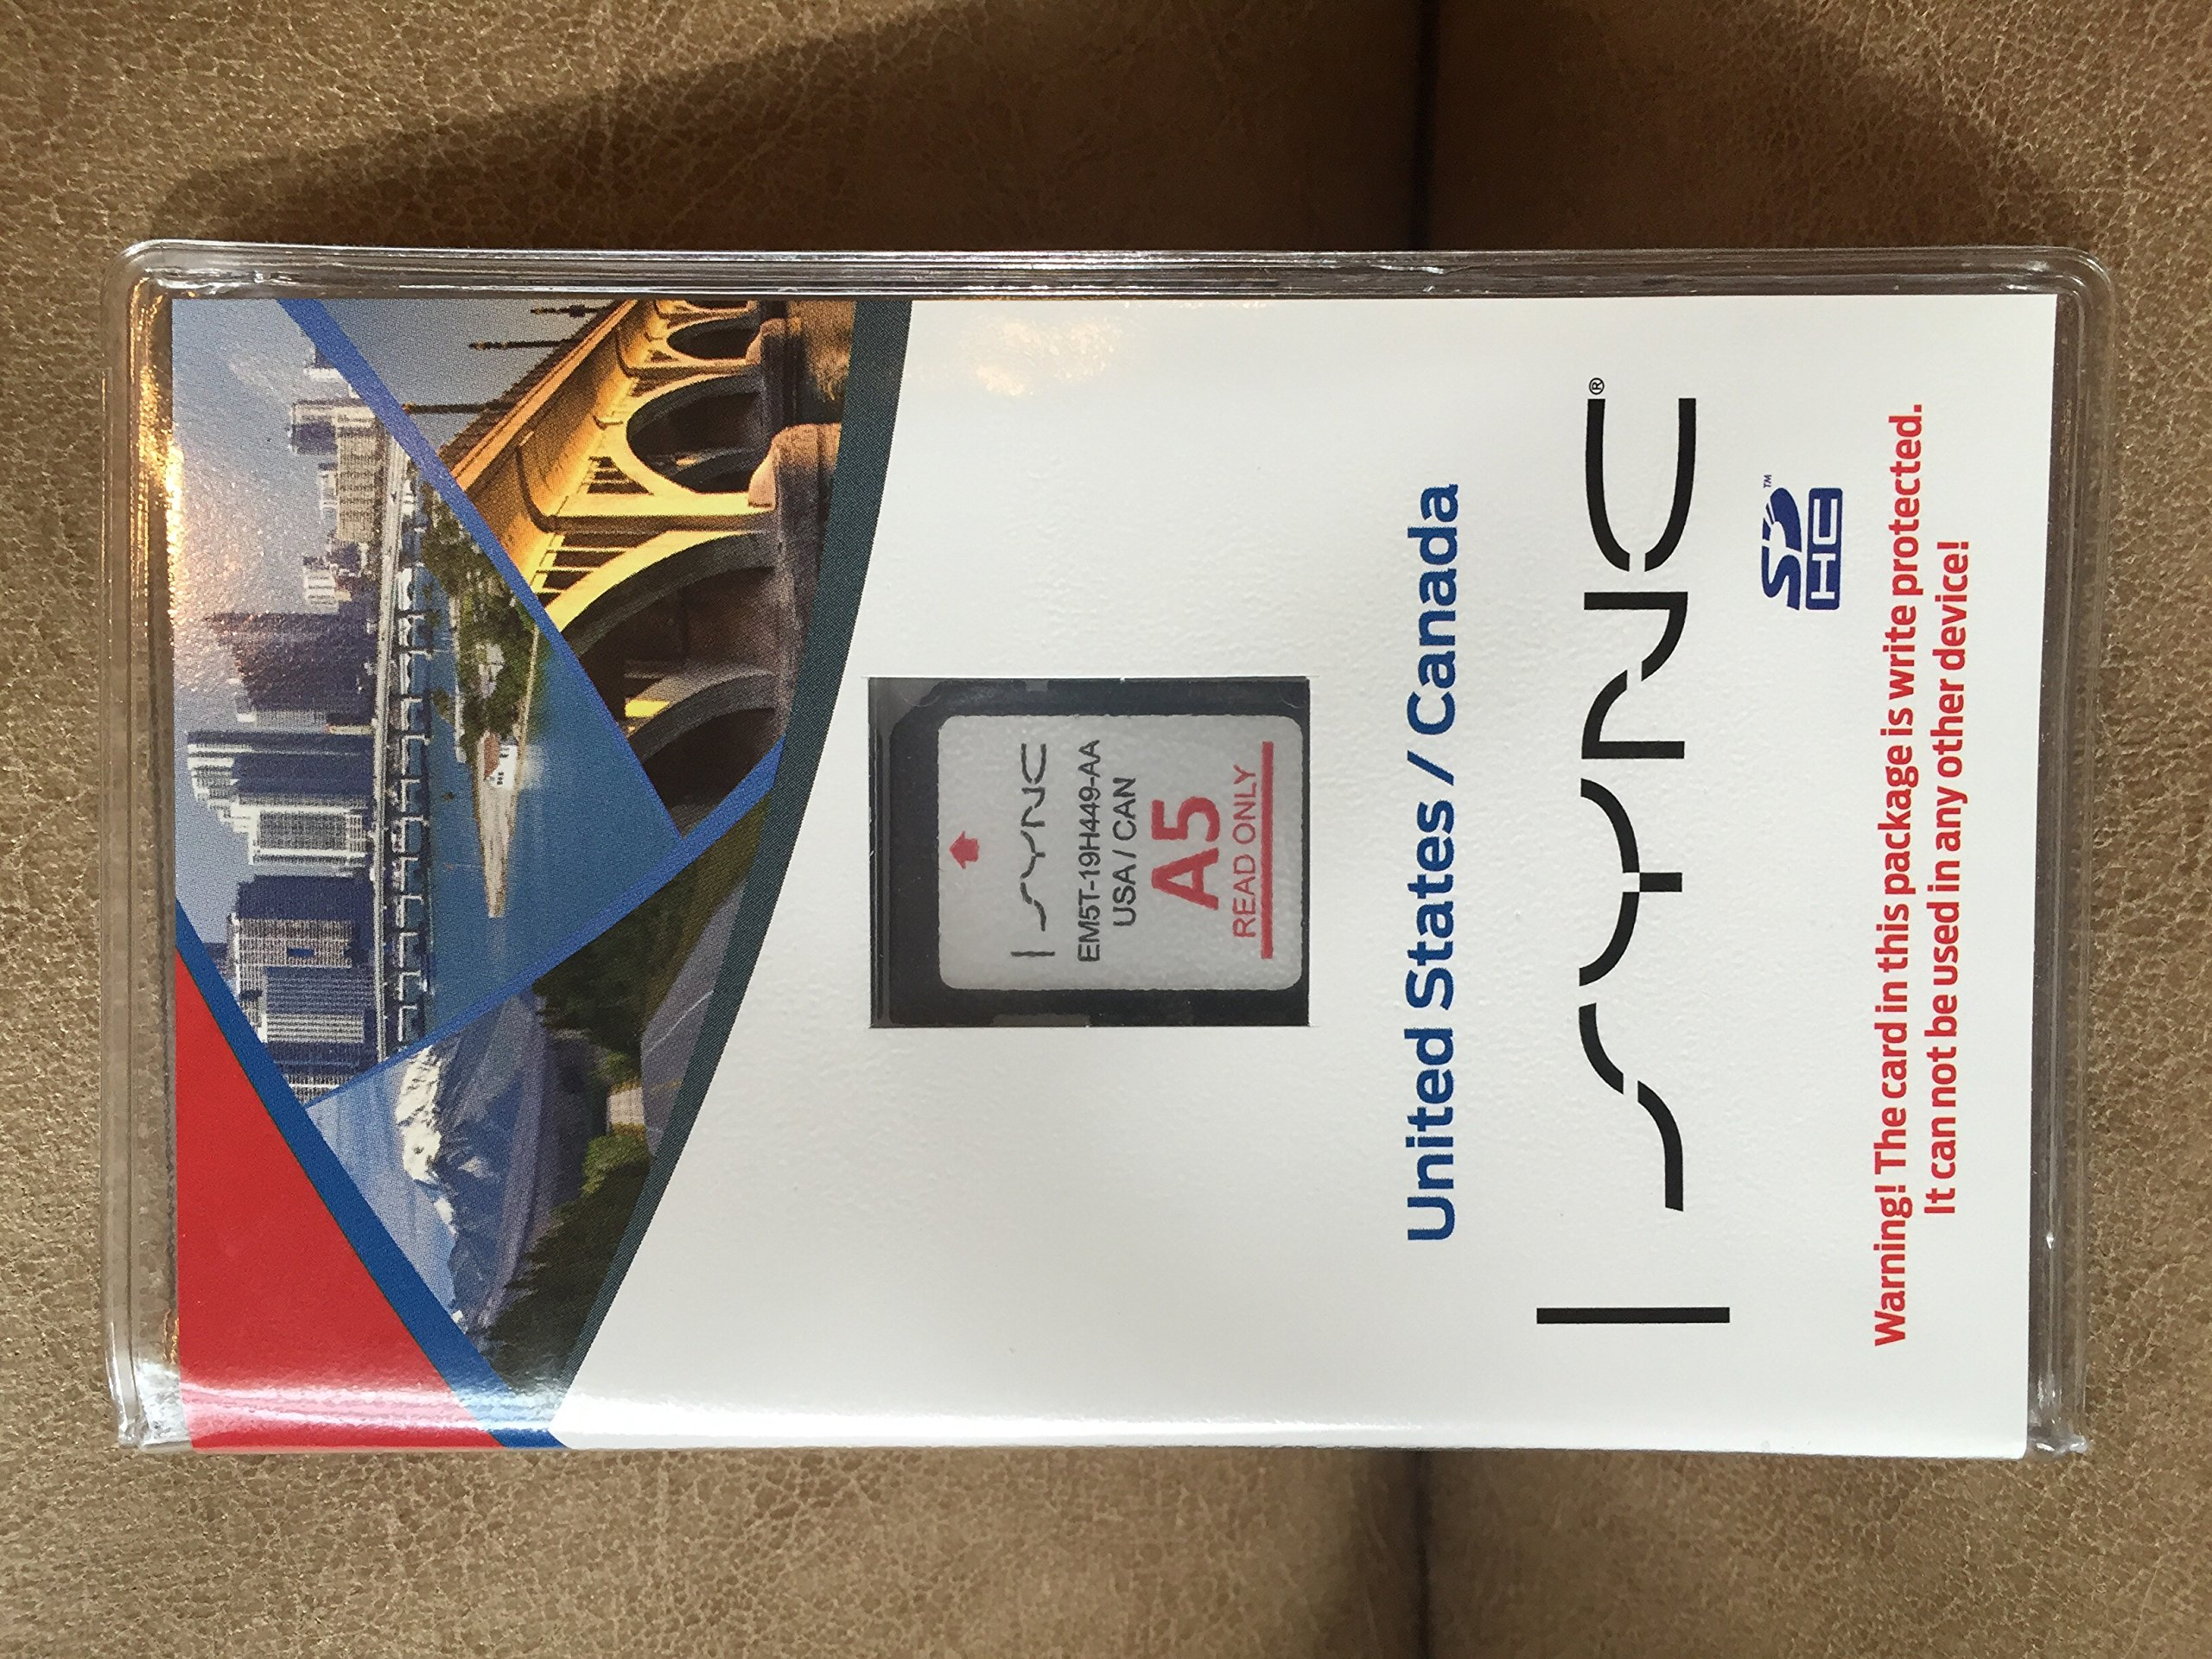 A5 FORD LINCOLN SD NAVIGATION CARD CHIP FITS ALL FORDS LINCOLN FROM 2012 TO 2016